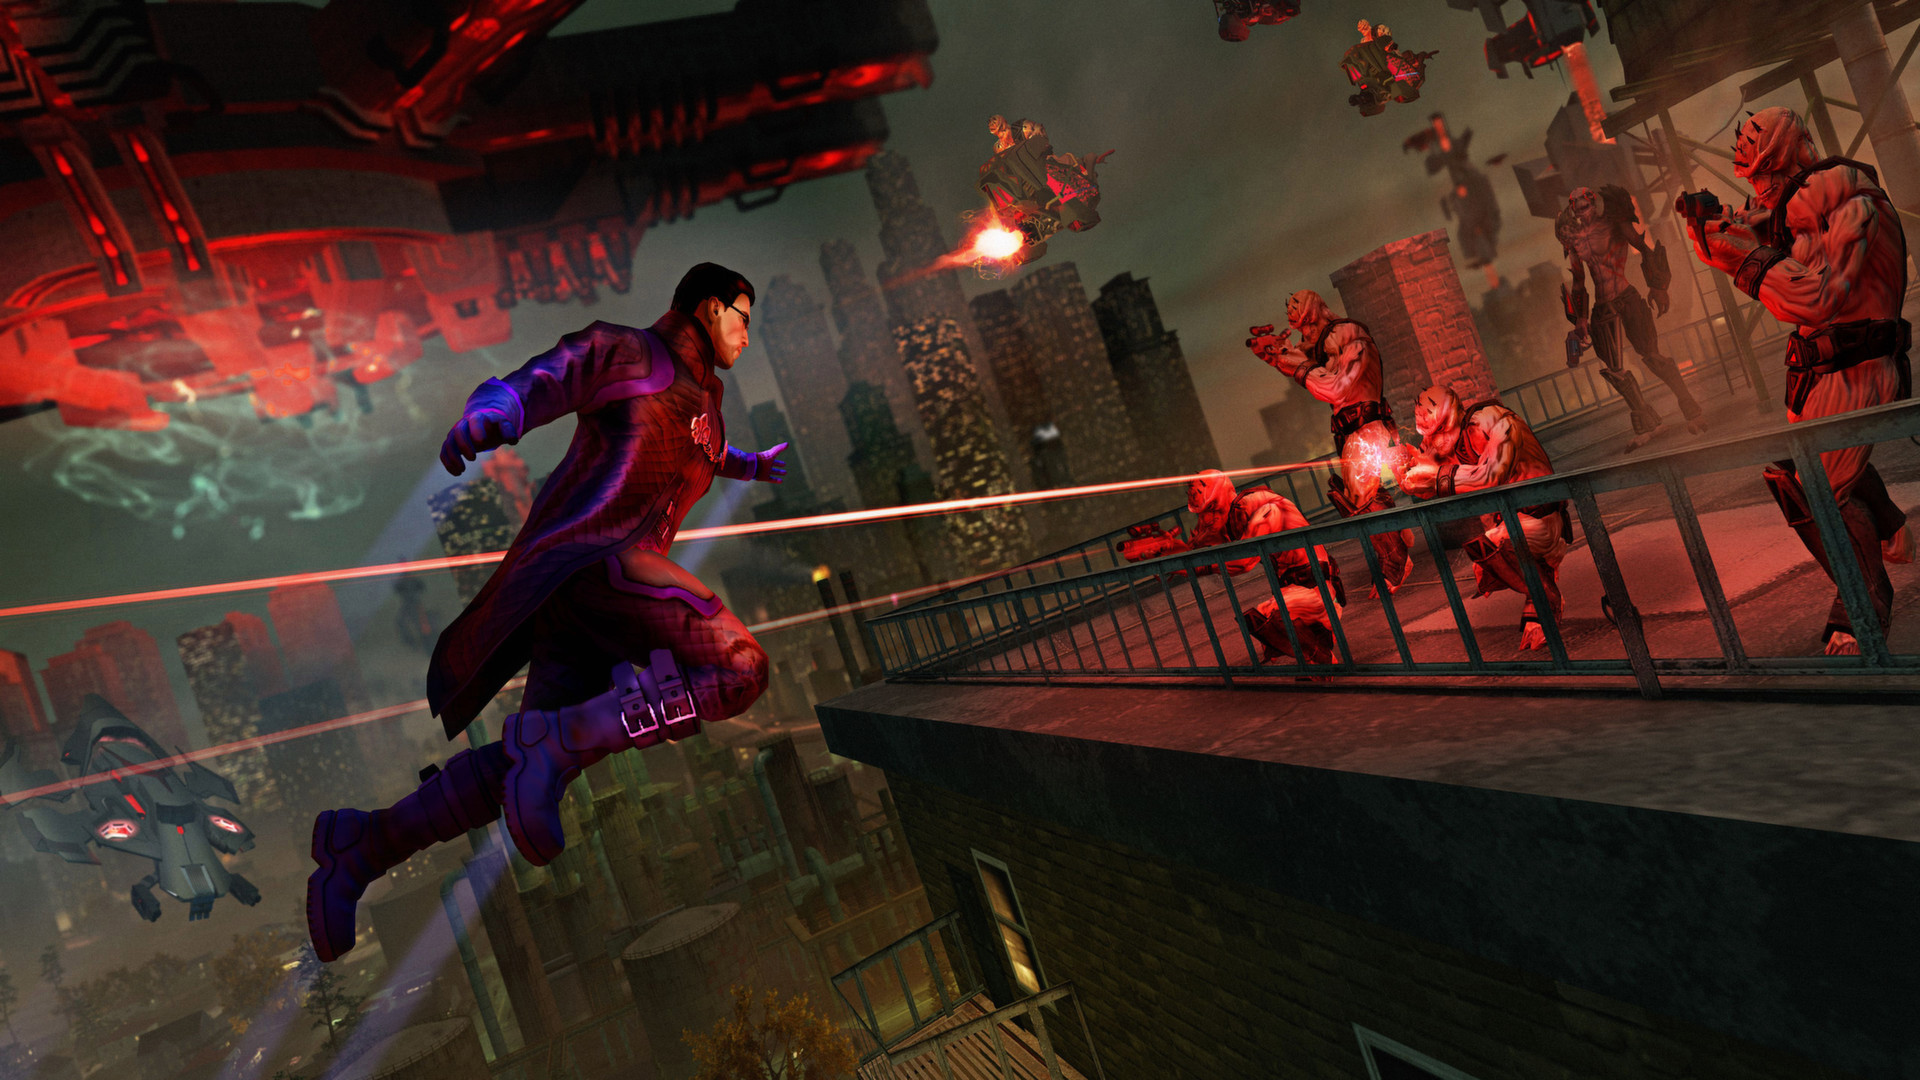 Saint Row 5 Release Date, Game Play, System Requirements